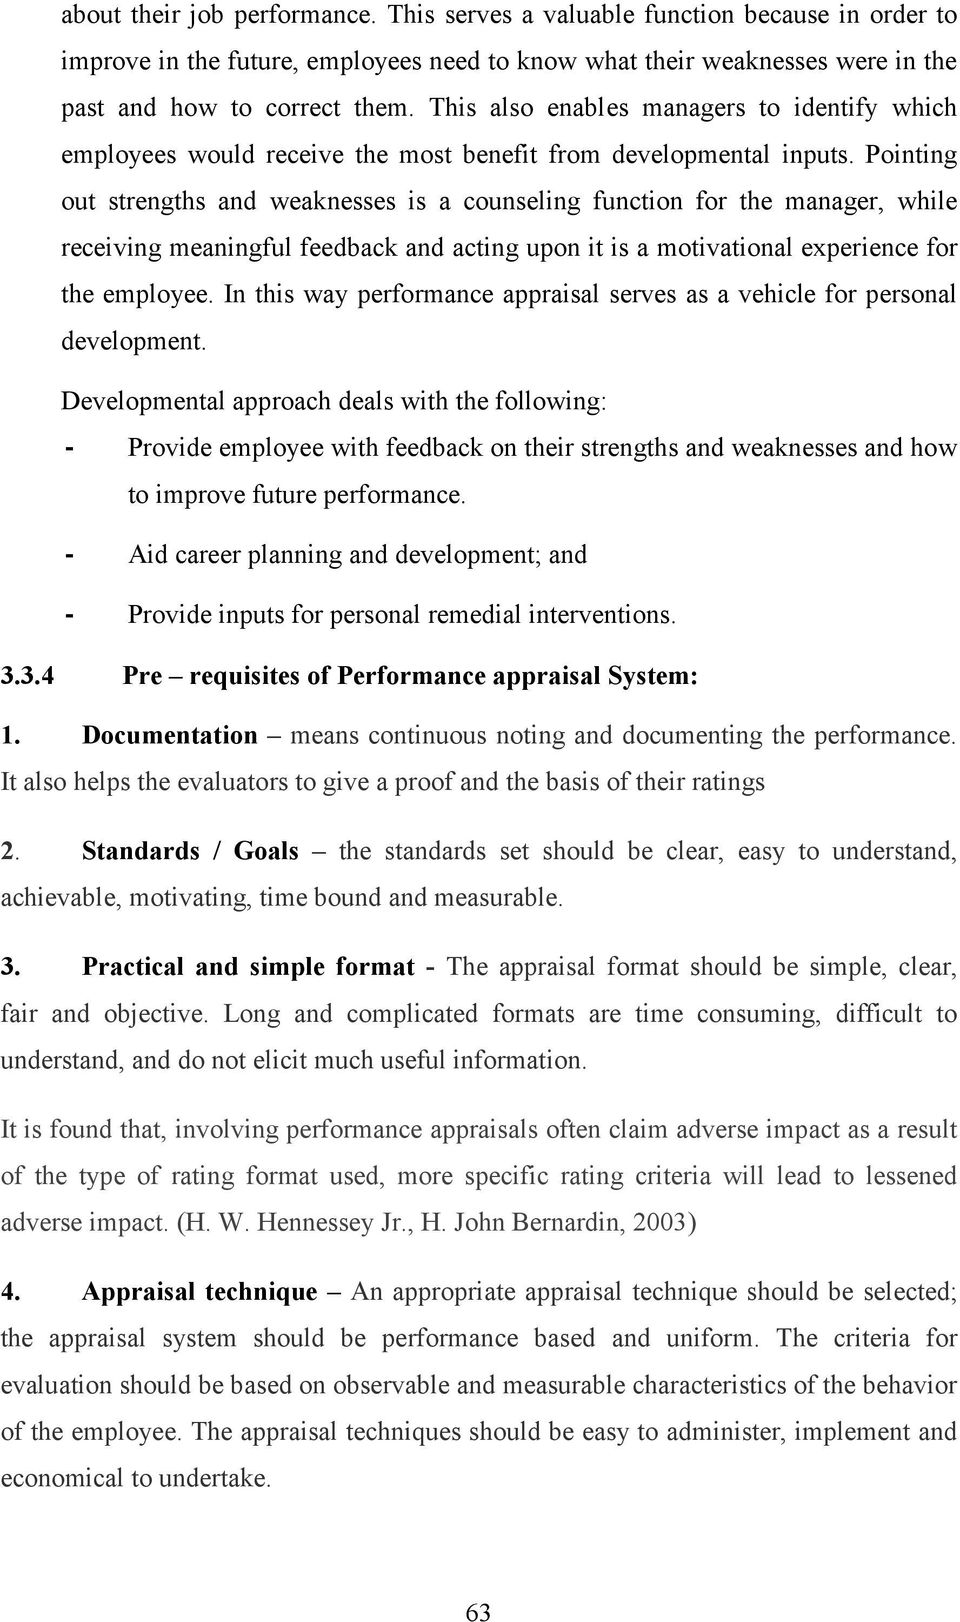 Different Types Of Performance Appraisal Techniques And Switching Action Isn39t Clear Schematic Switch Mode Power Supply Chapter 3 Parameters Pdf